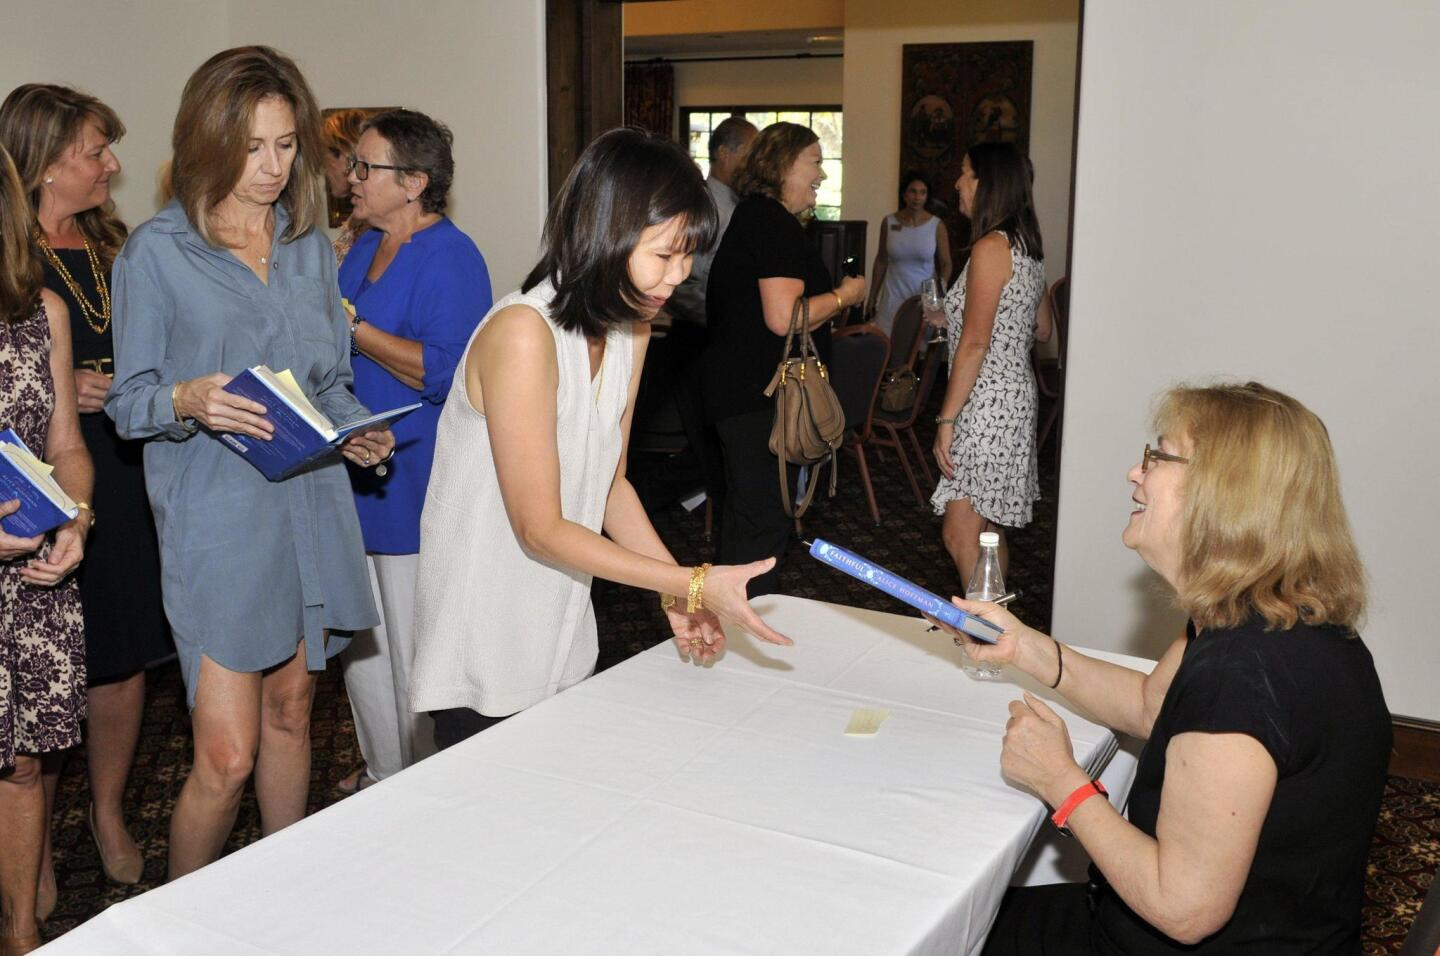 Author Alice Hoffman autographs her book